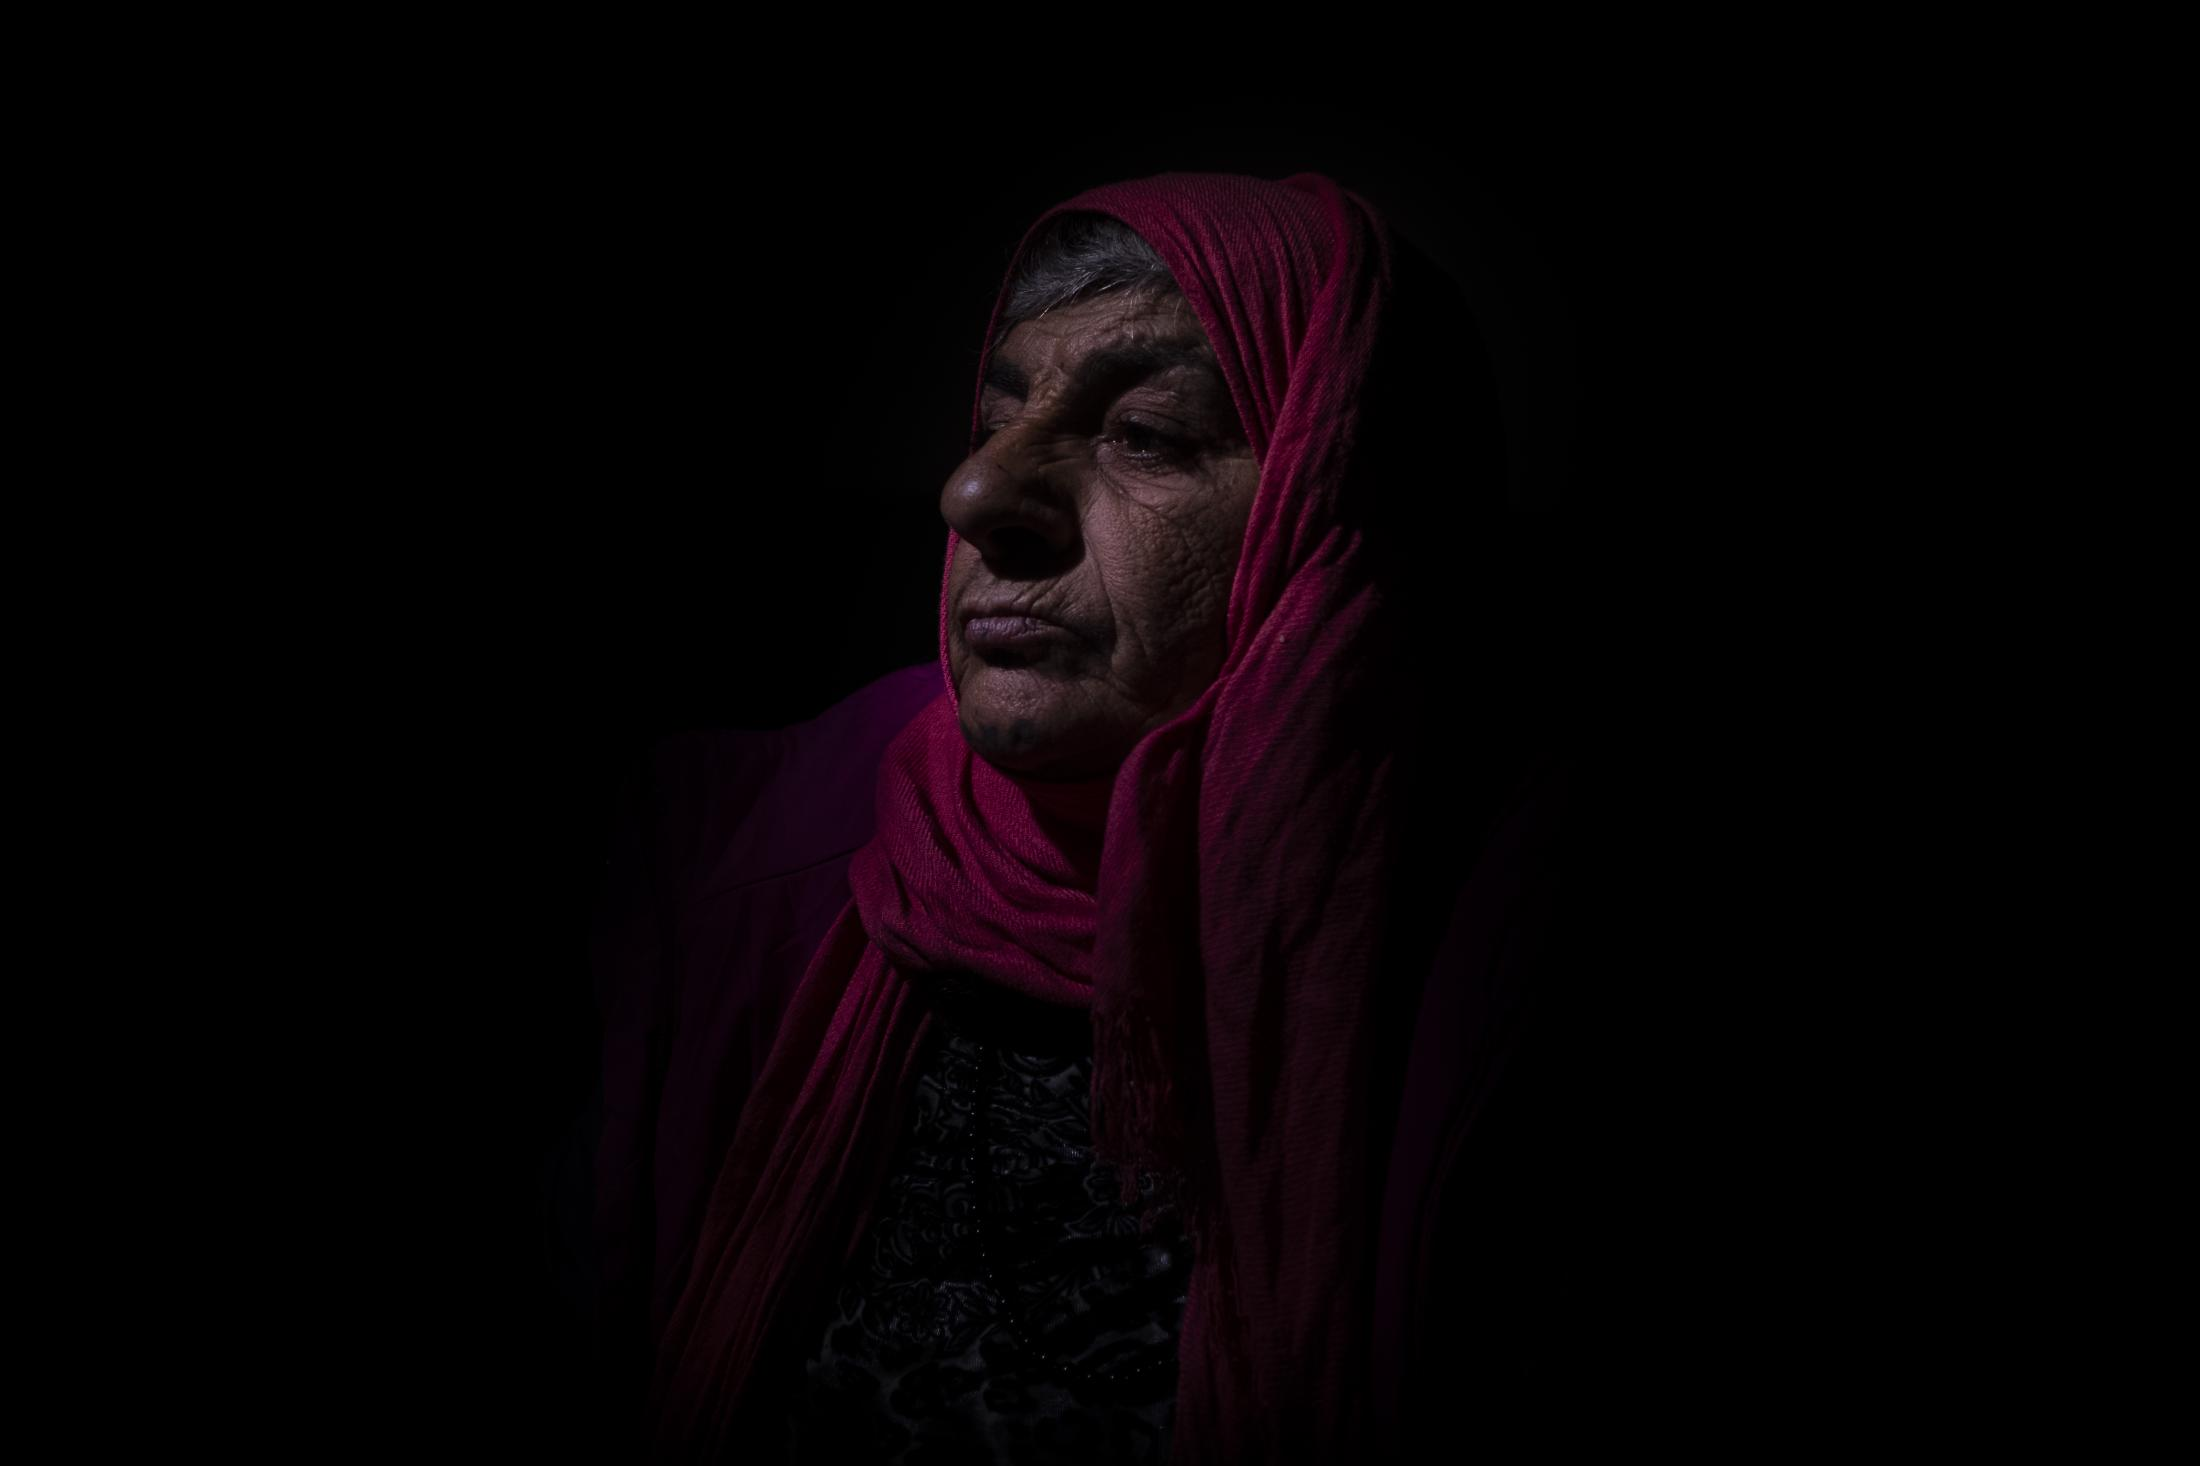 Hadja Mohamed (age not disclosed) was forced to flee during the attack of her village by Turkish proxies. This mother of three says they´ll never go back home. Former neighbours told her that her house was looted and destroyed by Islamist militias. After the withdrawal of US troops from northern Syria in October 2019, Turkey launched an offensive against the predominantly Kurdish areas in the northeast of the country along Islamist forces. Calls for war crimes investigations into the conduct of Ankara-backed militias are mounting ever since. (Andoni Lubaki / Euskal Fondoa)